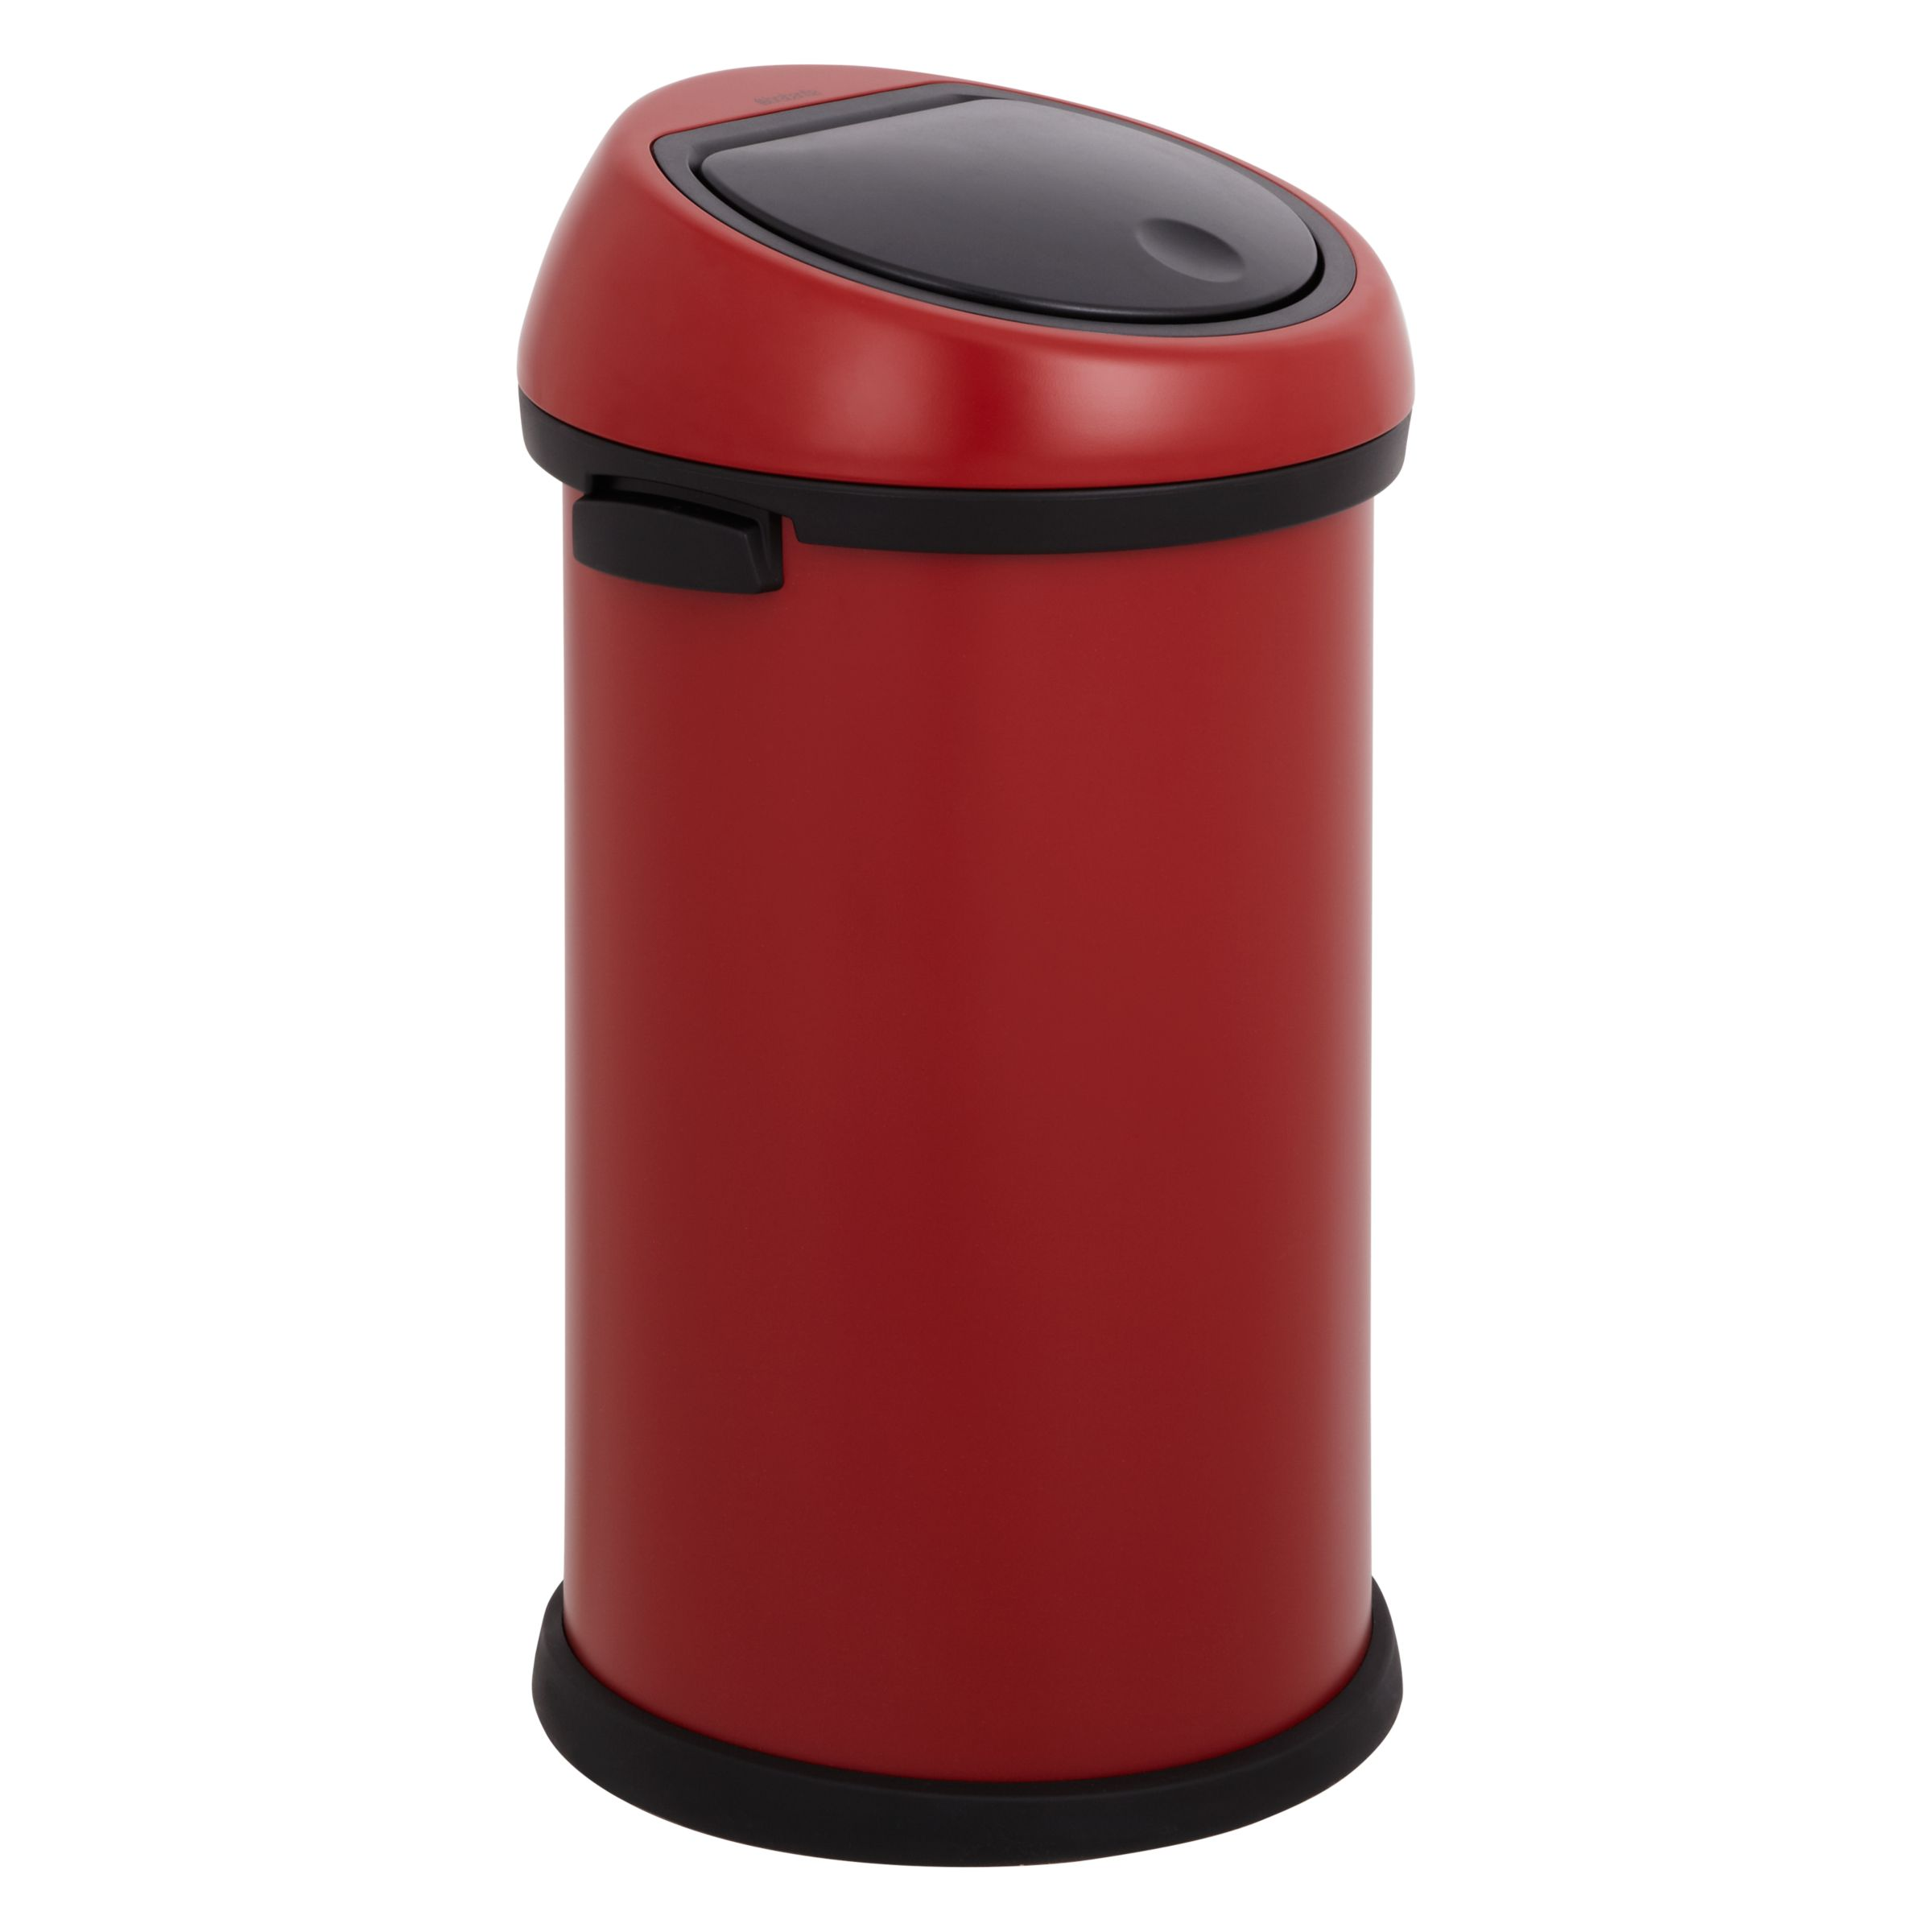 Touch Bin, Deep Red, 50L 167383